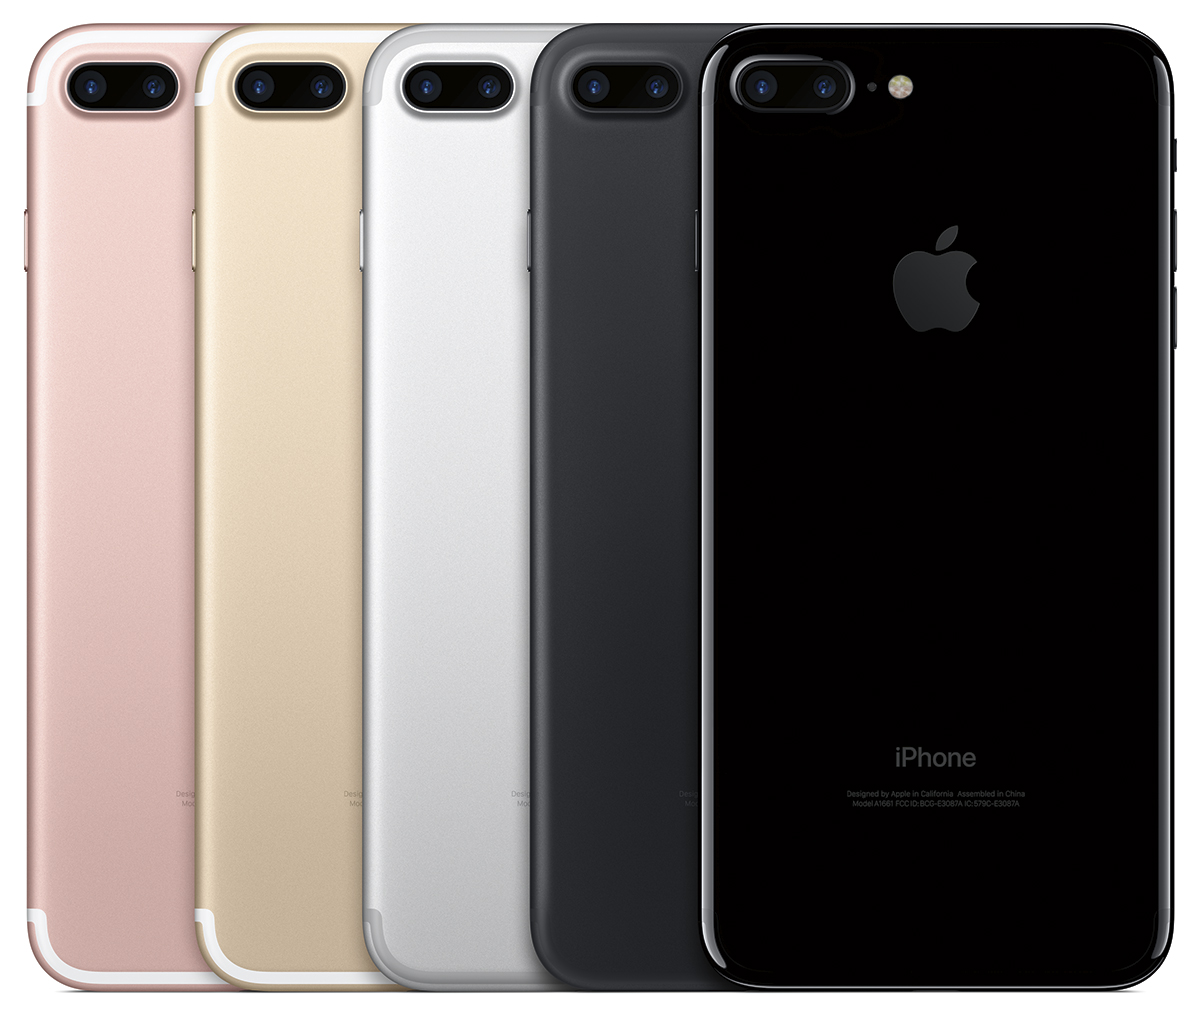 https://www.macfreak.nl/modules/news/images/z-iPhone7Plus-Lineup.jpg